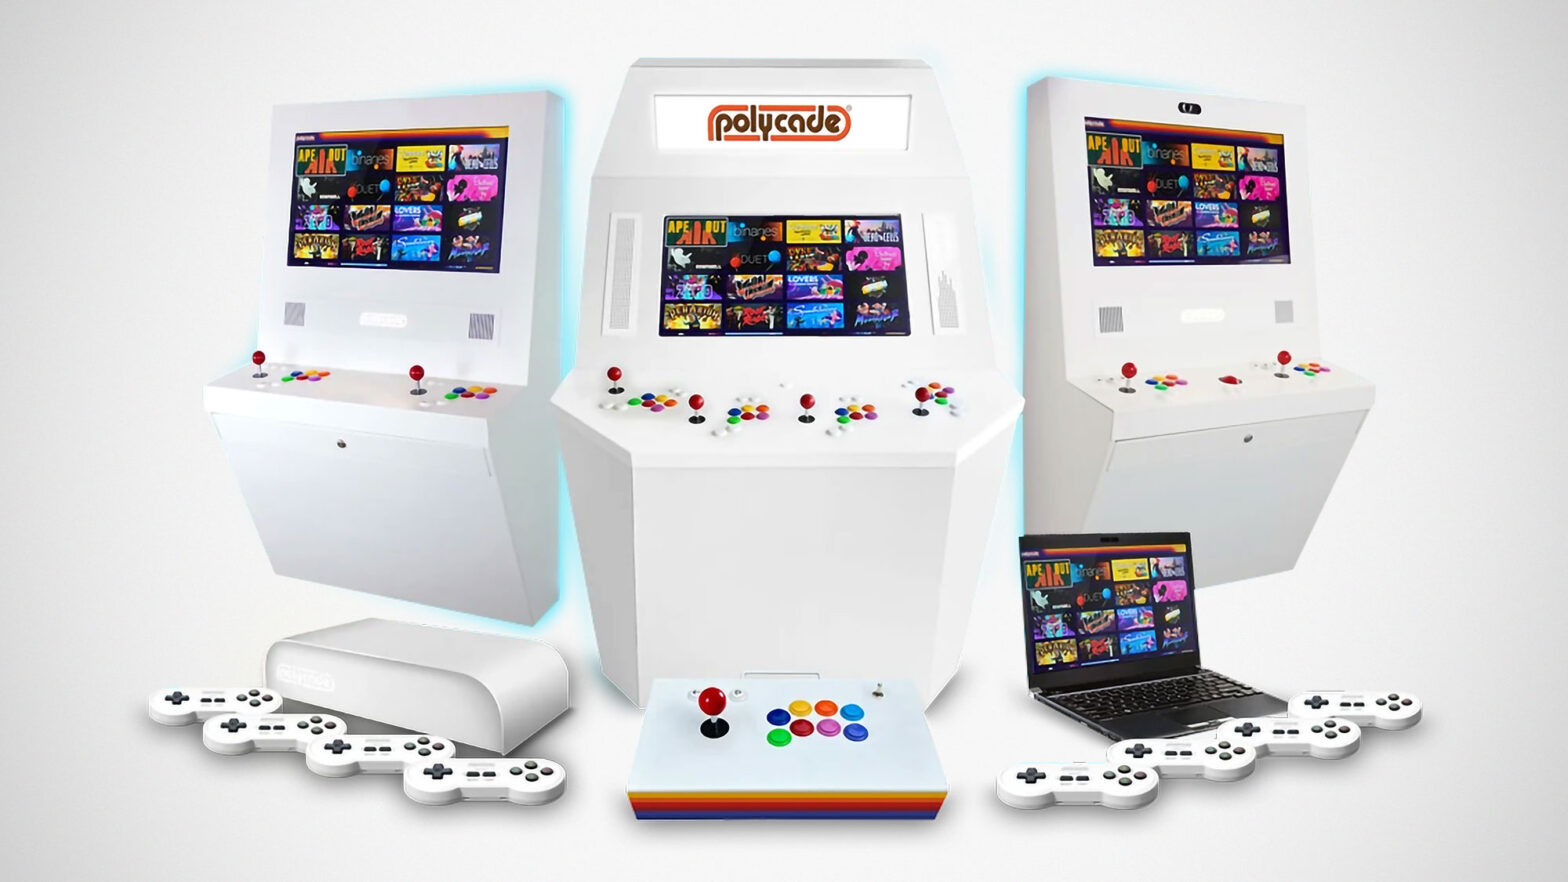 Polycade Retro Arcade Gaming with Modern Twist